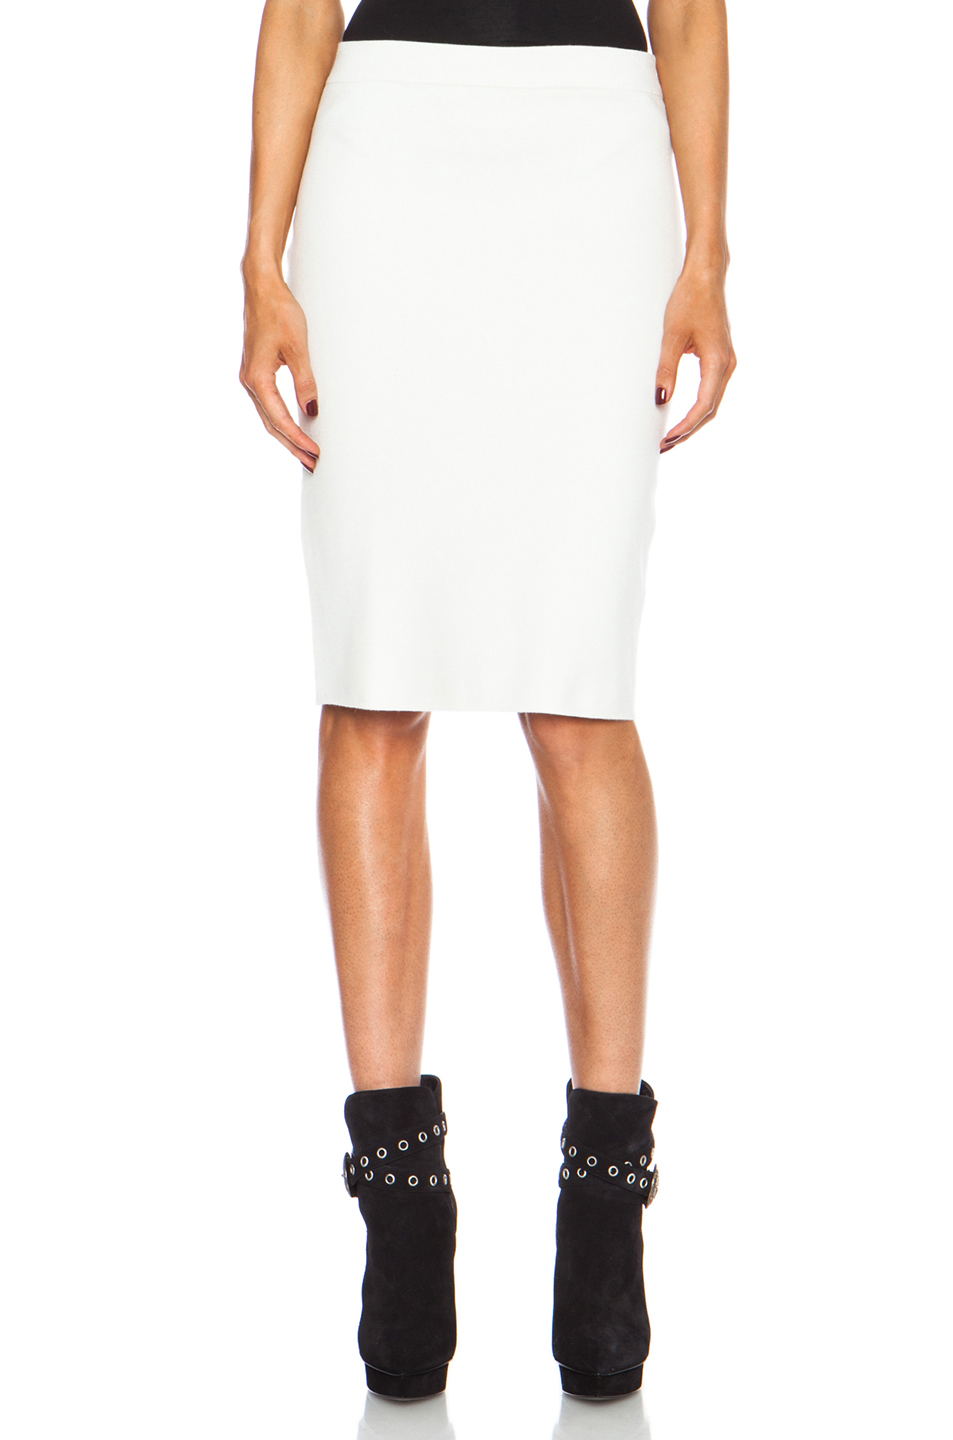 JONATHAN SIMKHAI | Stretch Pencil Rayon Skirt in White